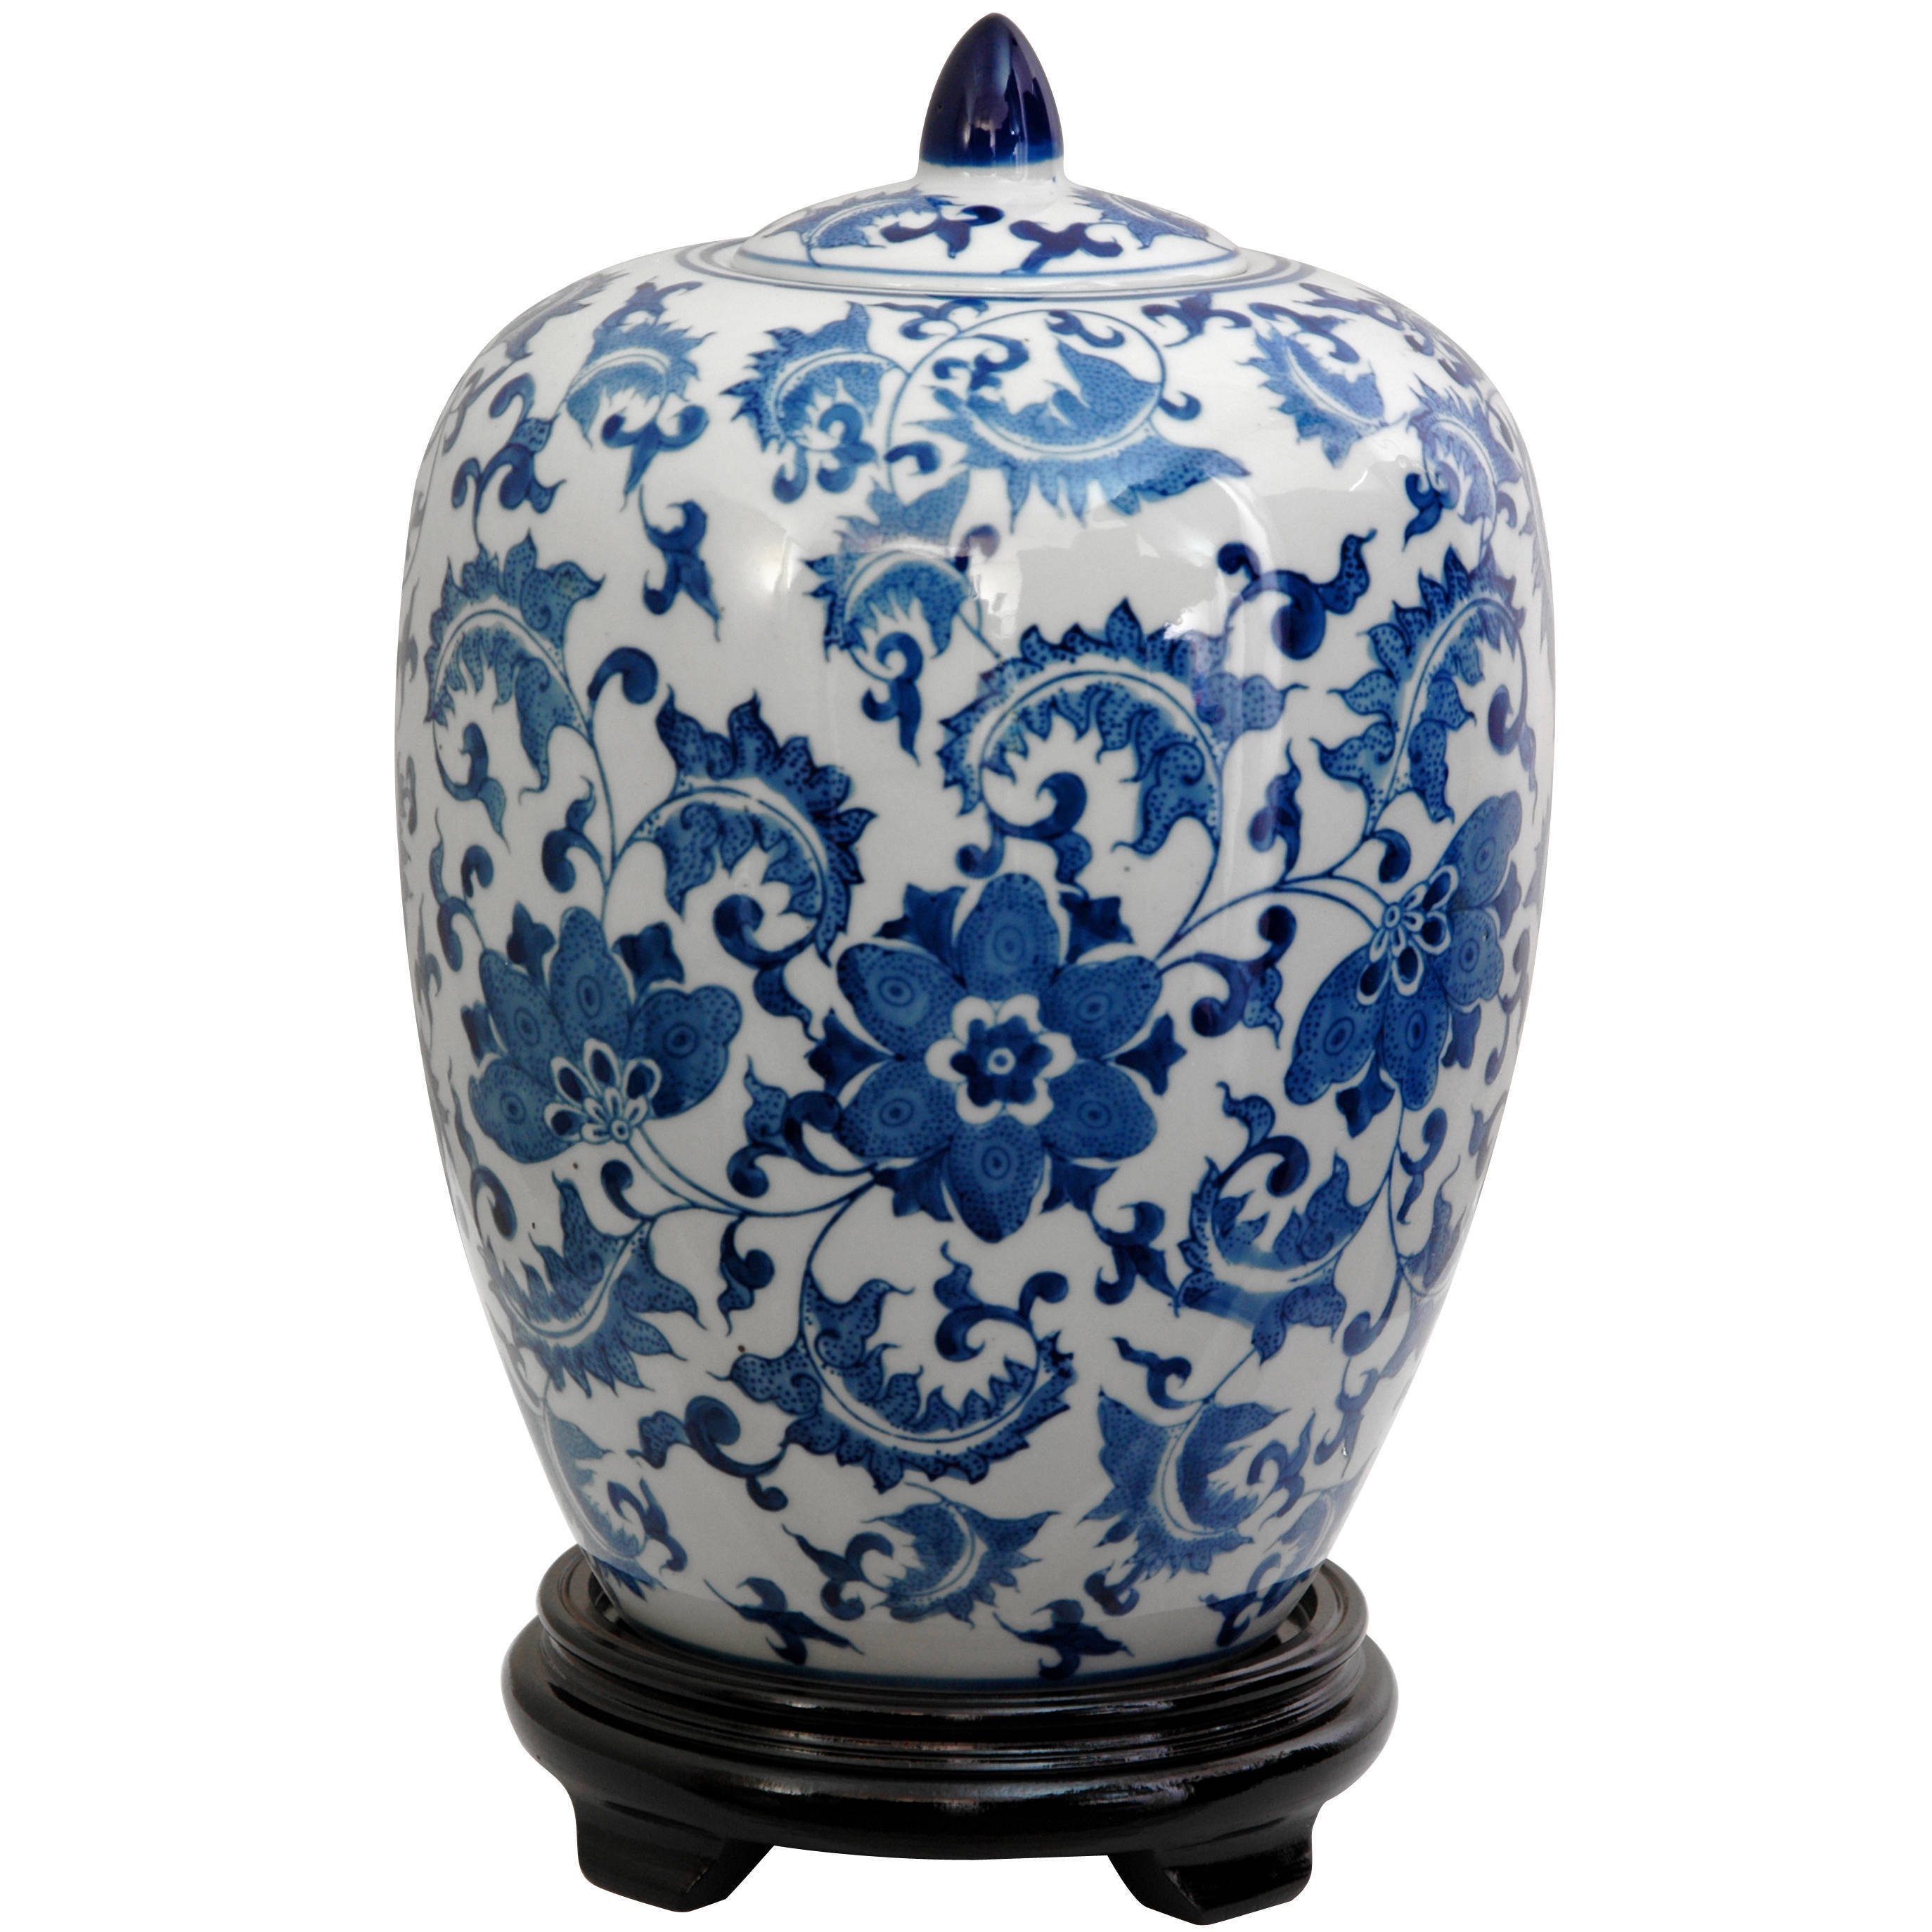 Handmade Porcelain 12-inch Blue and White Floral Vase Jar (China) (12 Floral Blue & White Porcelain Vase Jar (China))